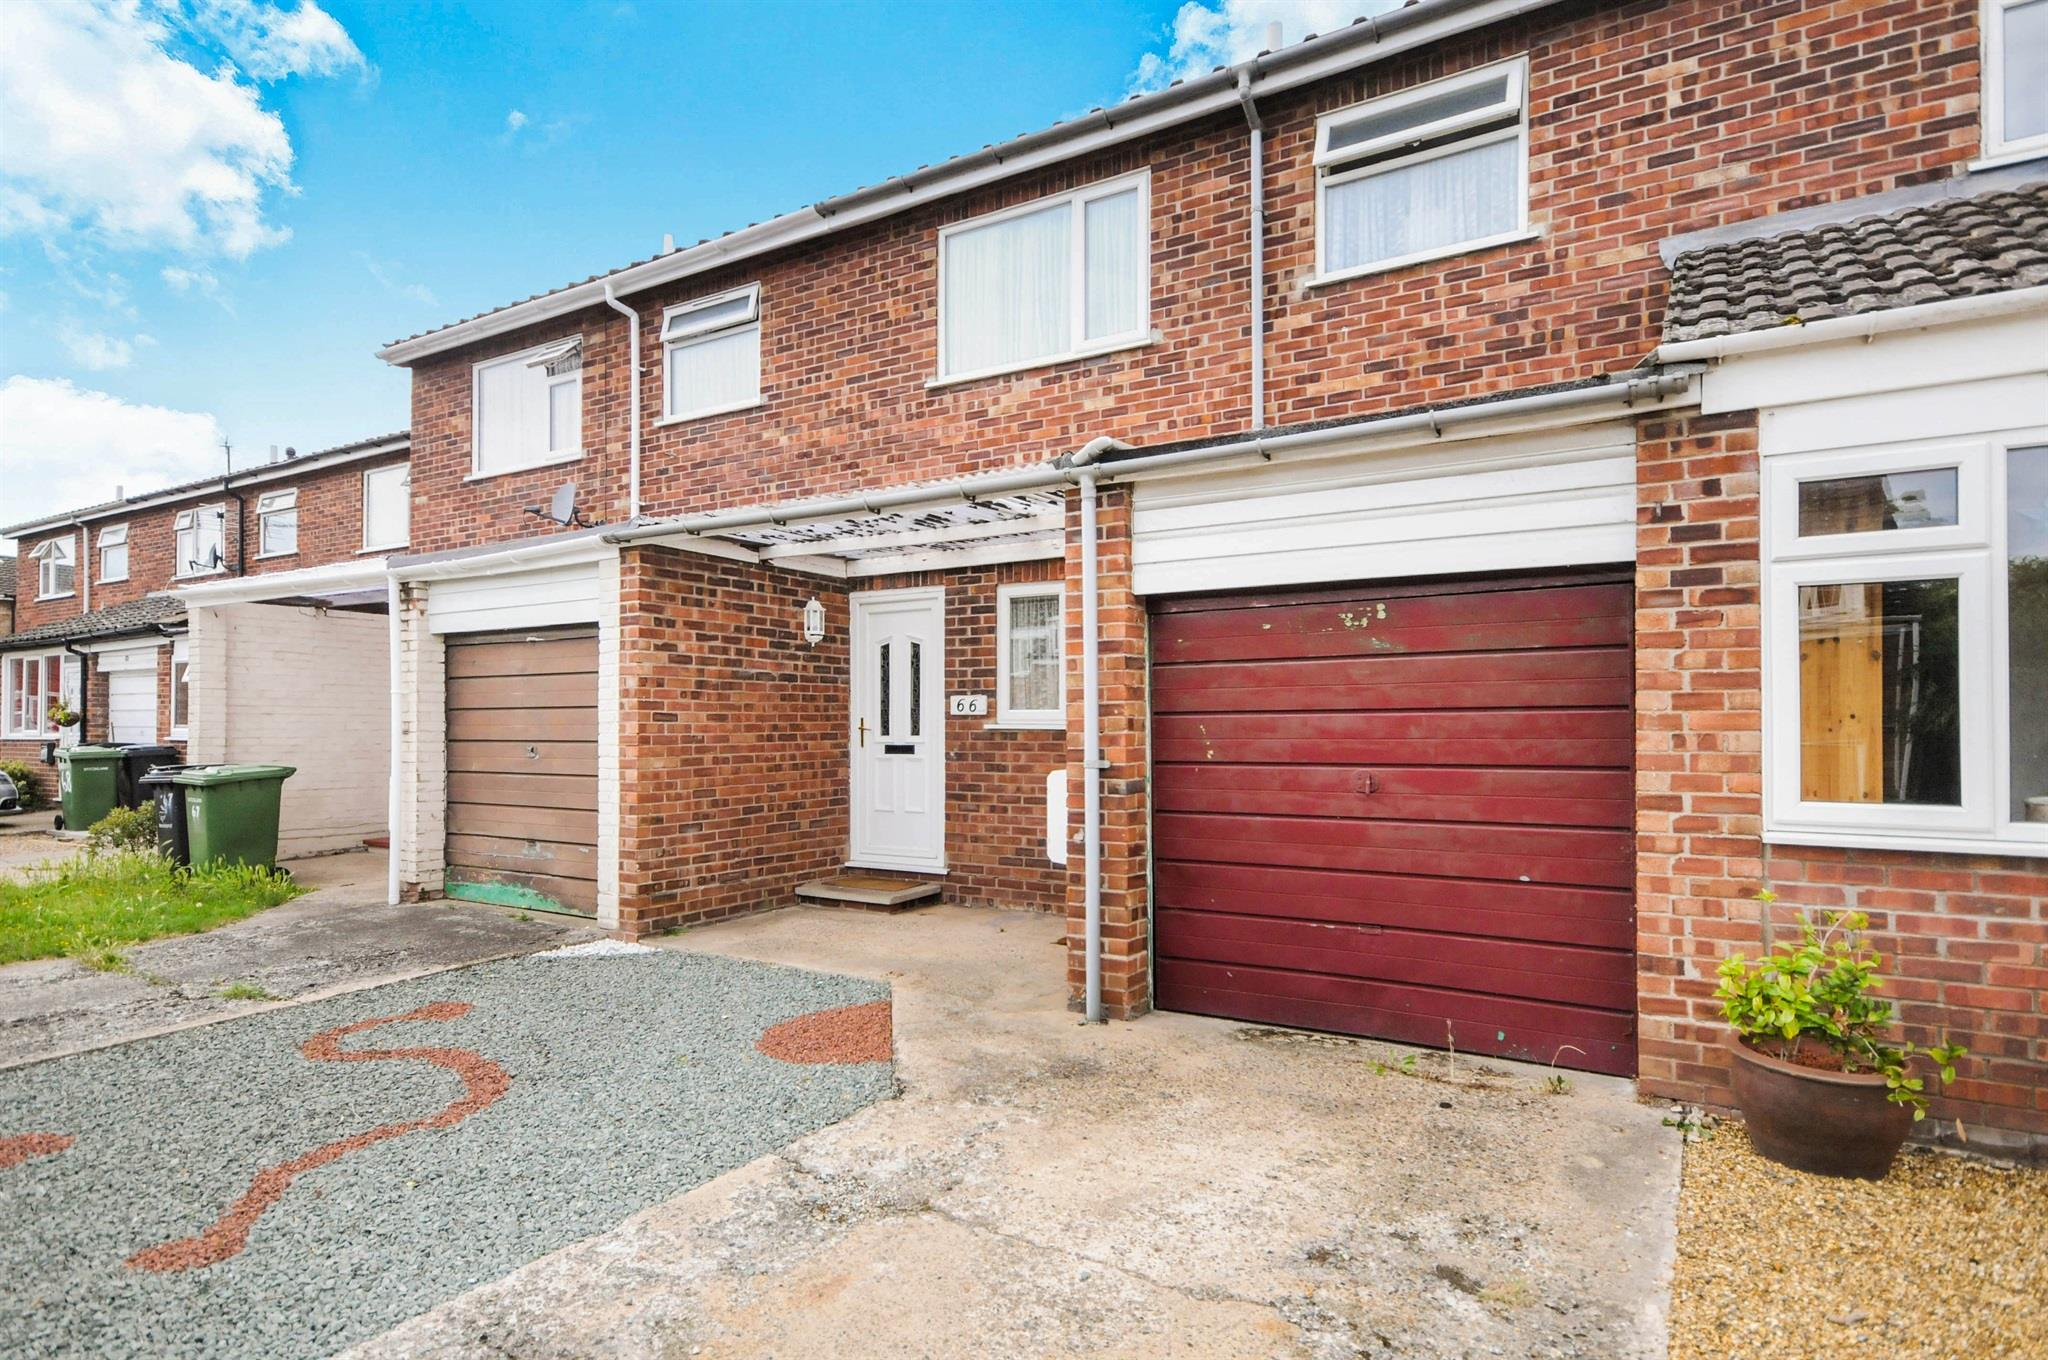 Property Fpr Sale In Thetford